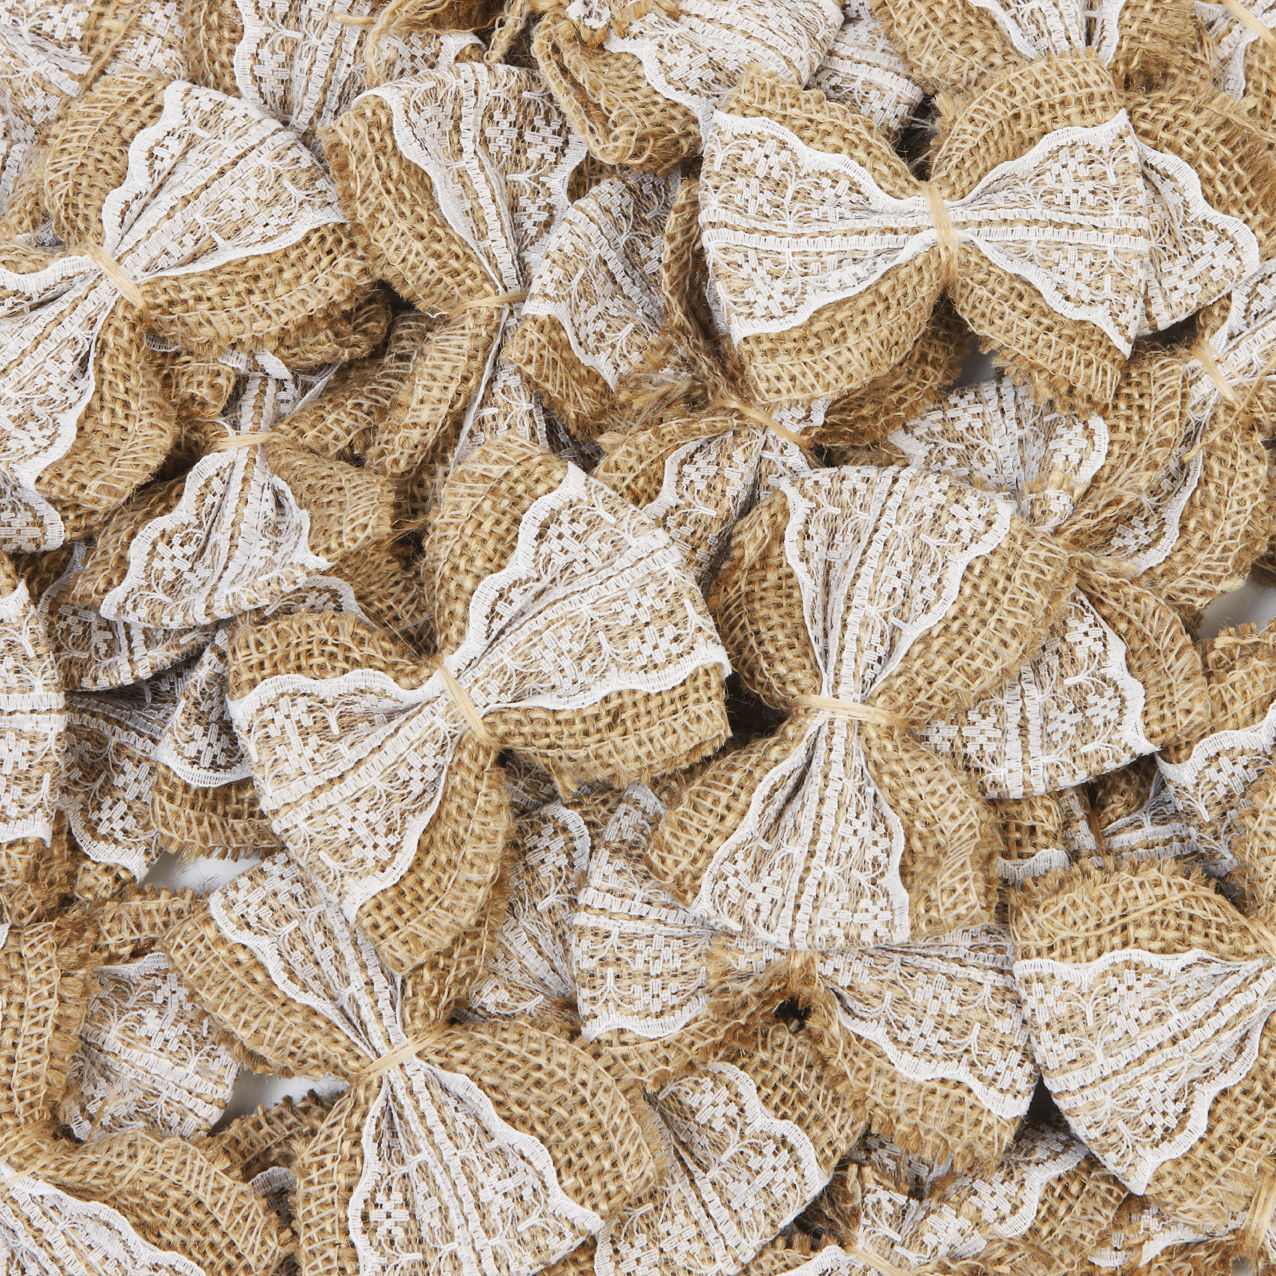 10 Pieces Pack Hessian Burlap Lace Bows Embellishments Chic Christmas Tree Rustic Wedding Craft L1 In Party Diy Decorations From Home Garden On